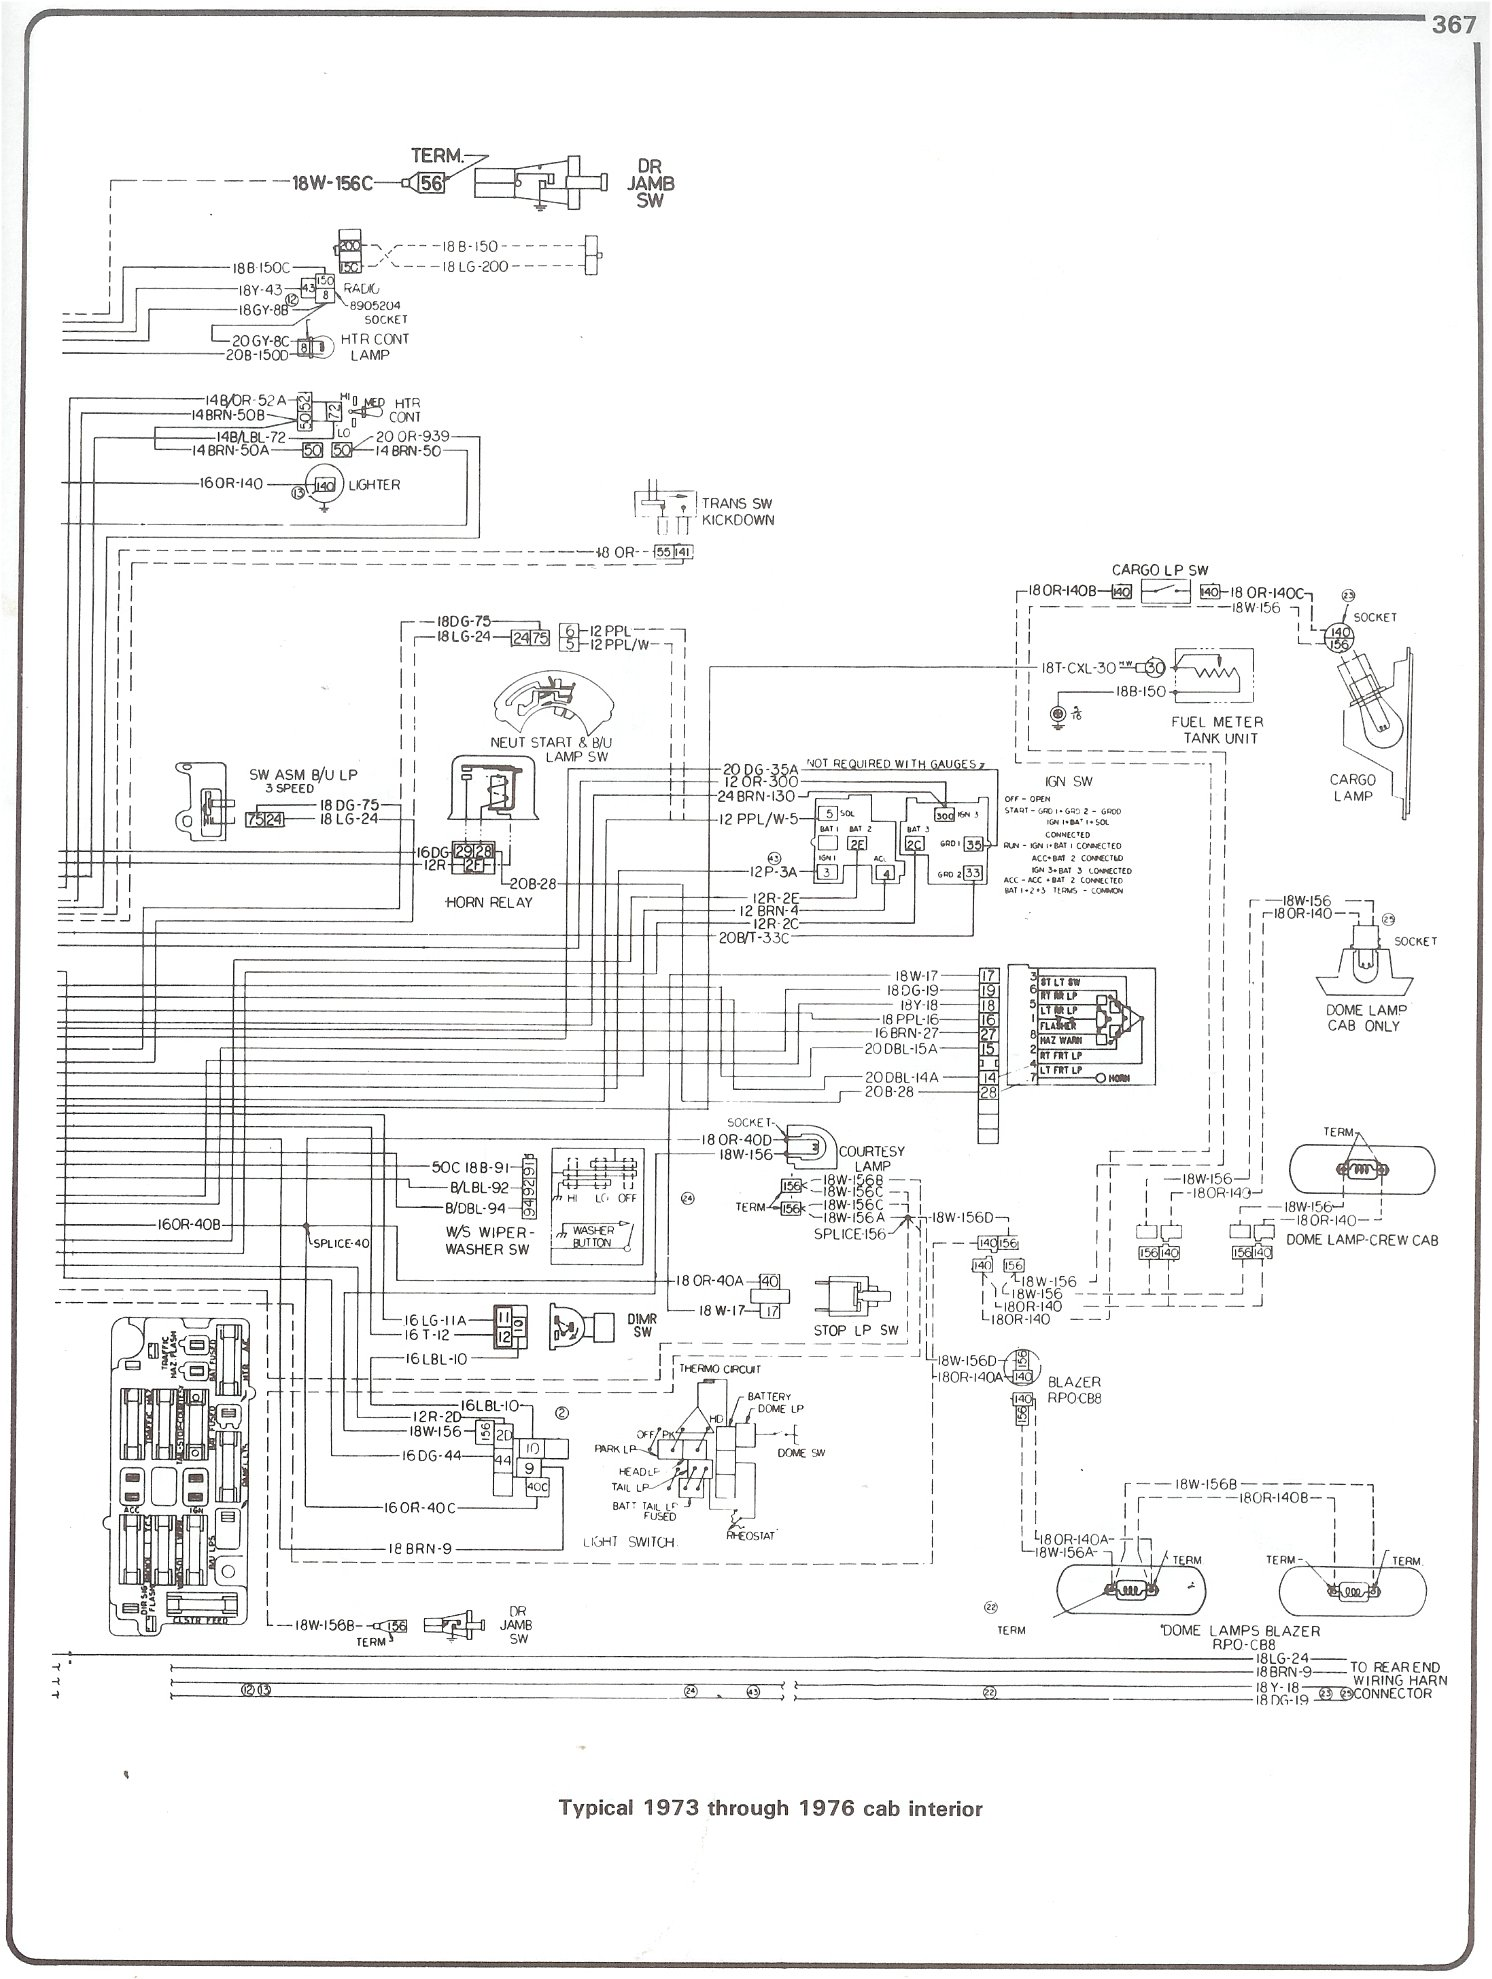 73 76_cab_inter complete 73 87 wiring diagrams 1978 chevy truck wiring diagram at reclaimingppi.co